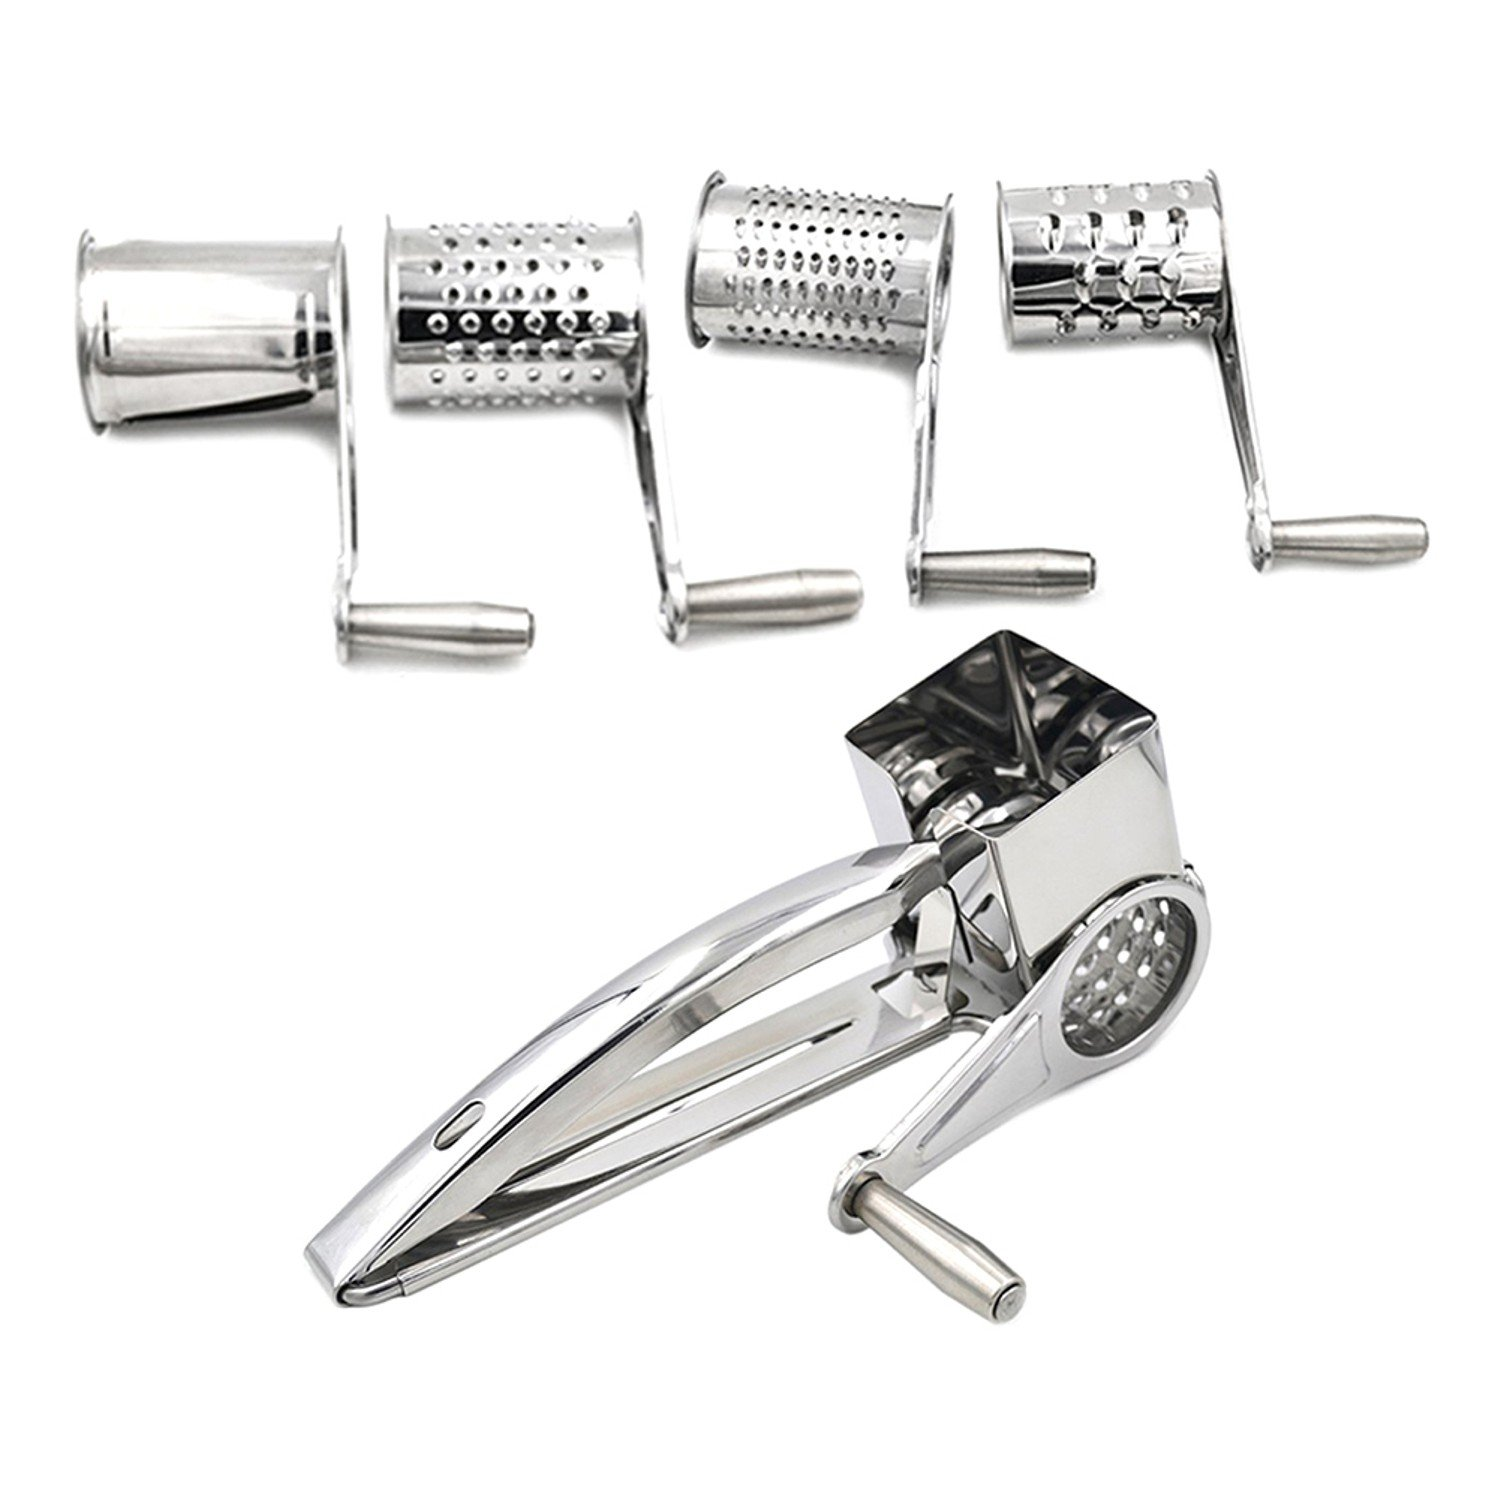 4 Drums Blades/Set Rotary Cheese Grater Stainless Steel Cheese Slicer Shredder Kitchen Butter Cutter